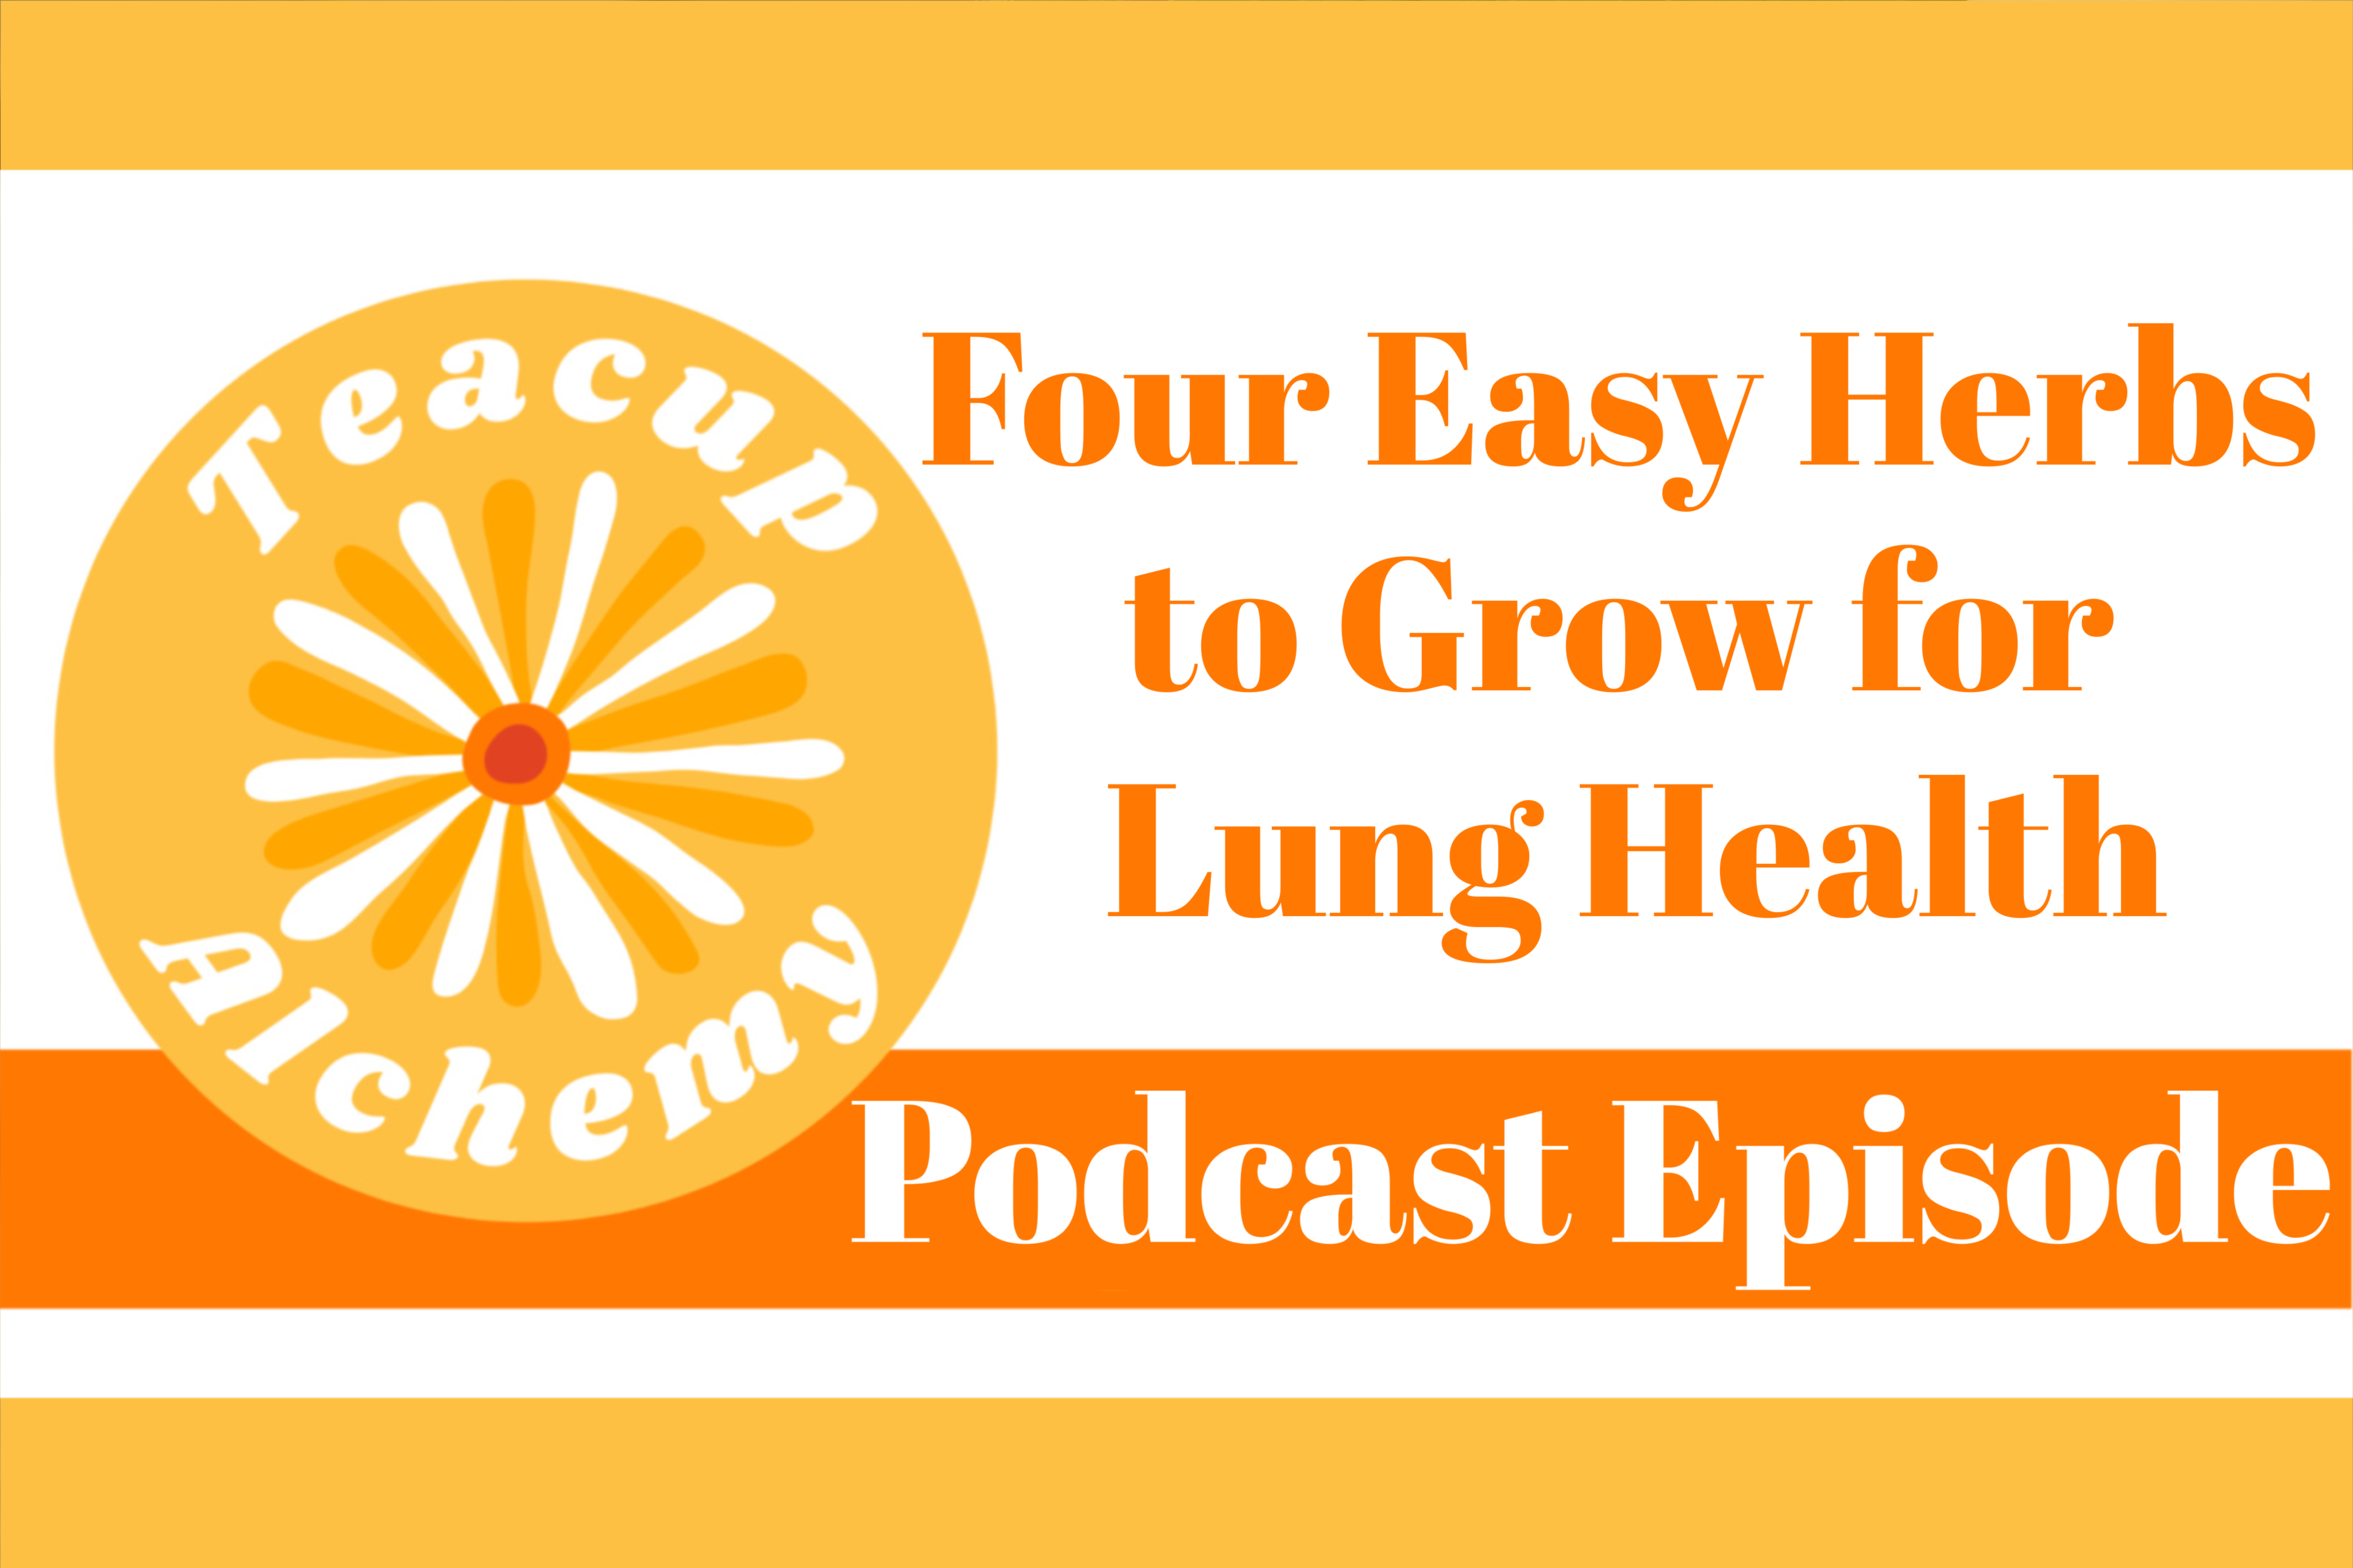 Podcast: 4 Easy Herbs to Grow for Lung Health